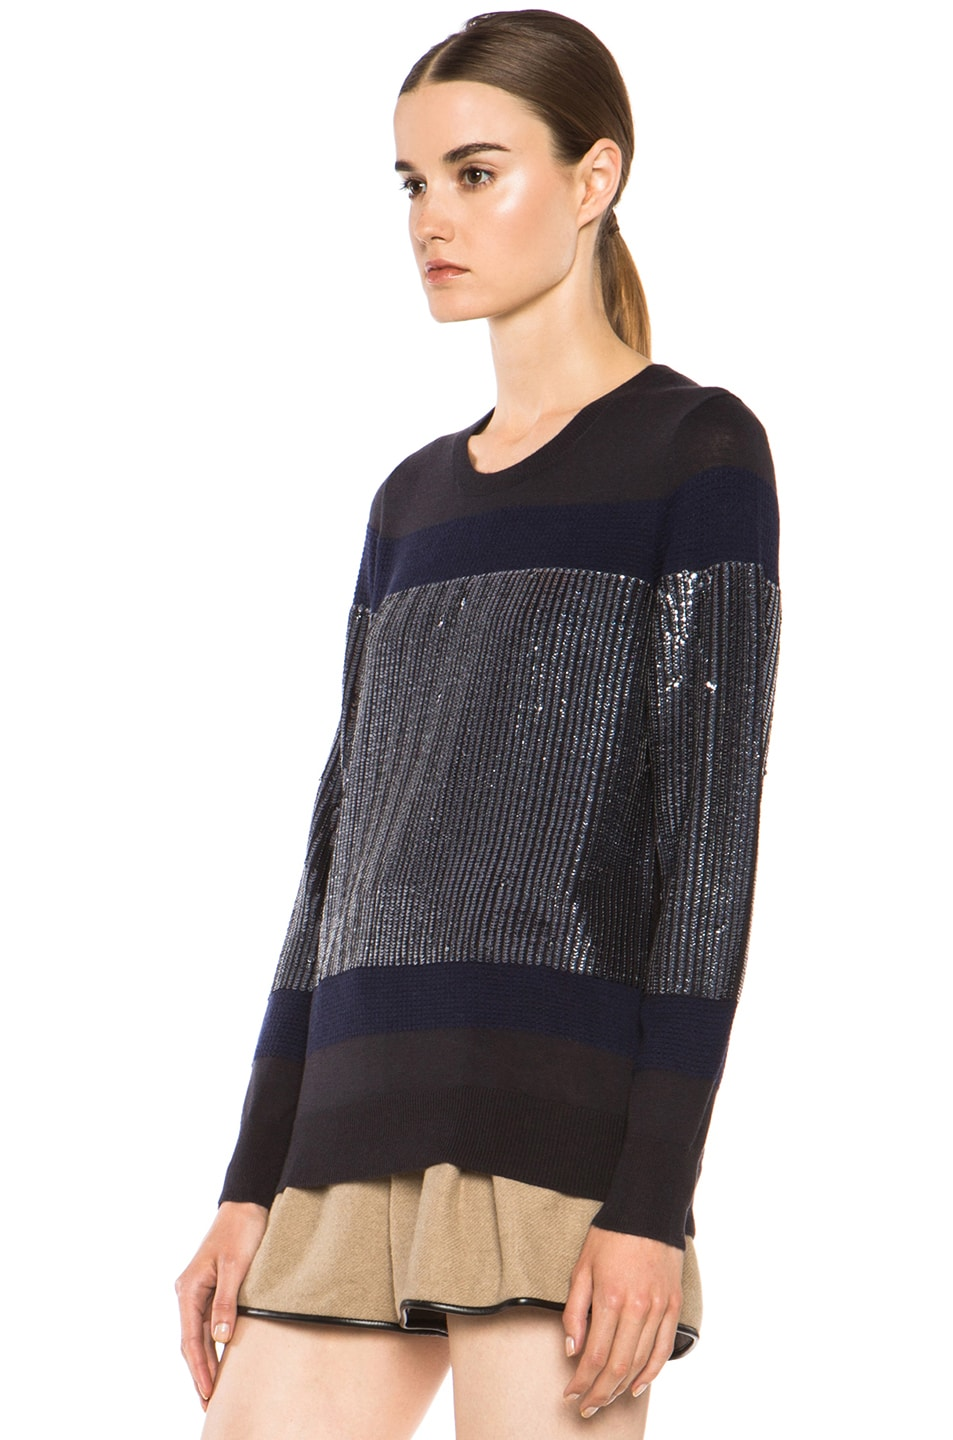 Image 2 of 3.1 phillip lim Sequin Stripe Merino Wool Pullover in Charcoal